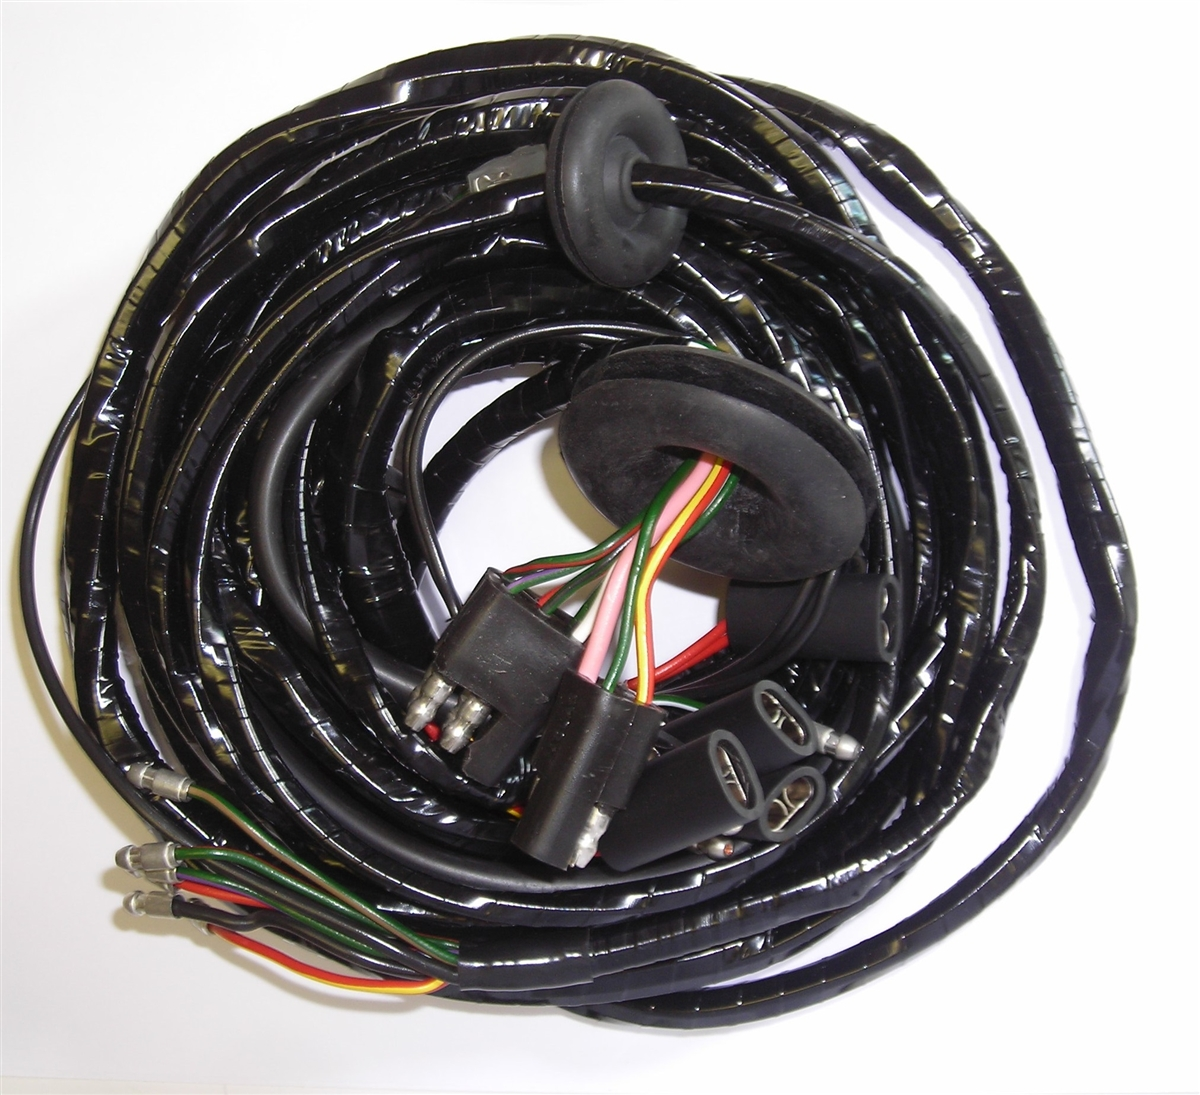 LR337 2?1402650264 rover body wiring harness 3 wire harness at suagrazia.org